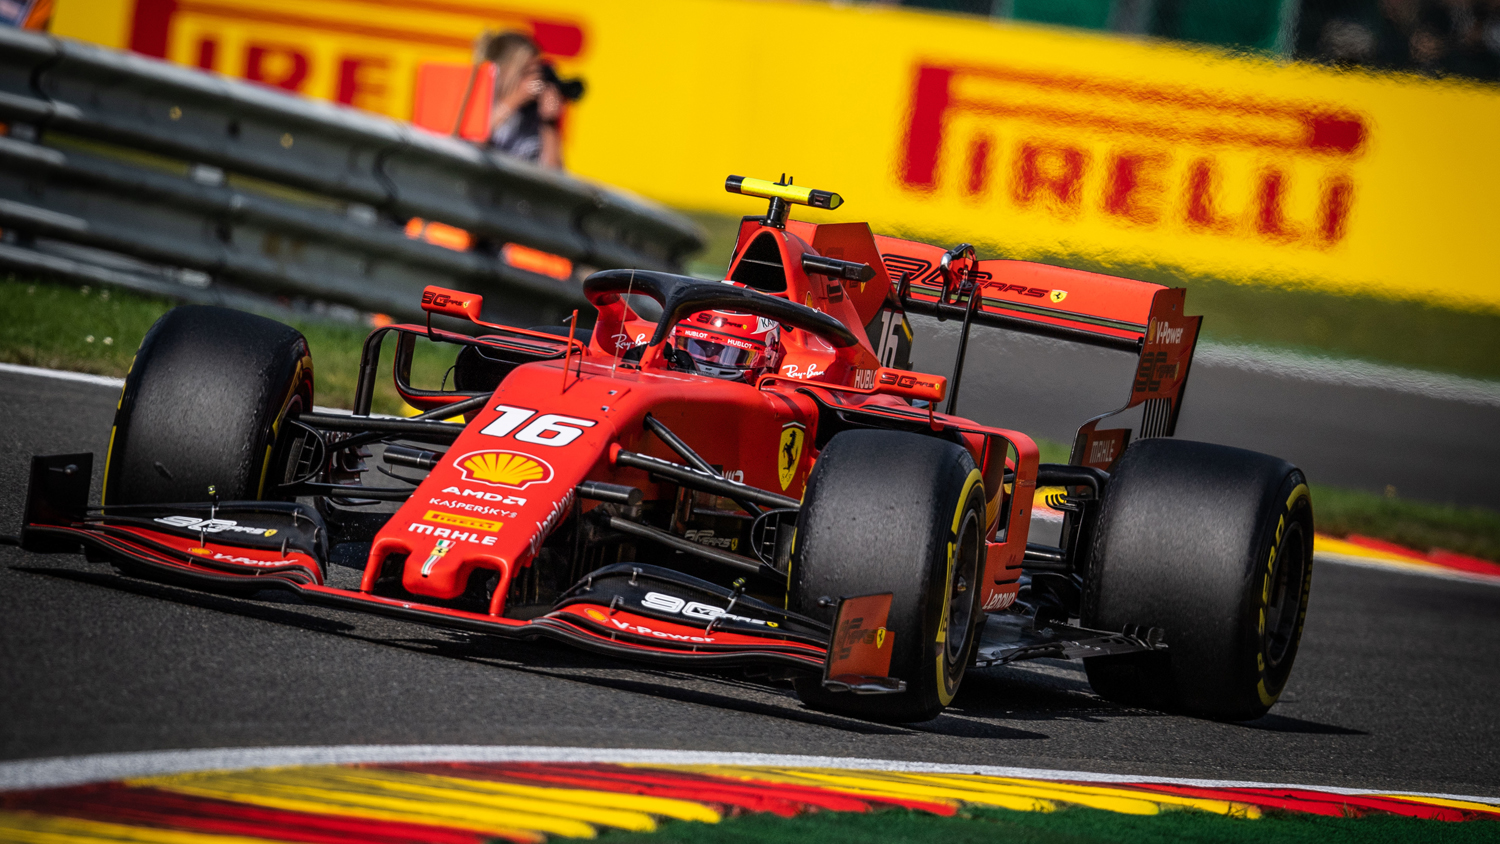 Italian Grand Prix live stream: how to watch F1 racing in 4K